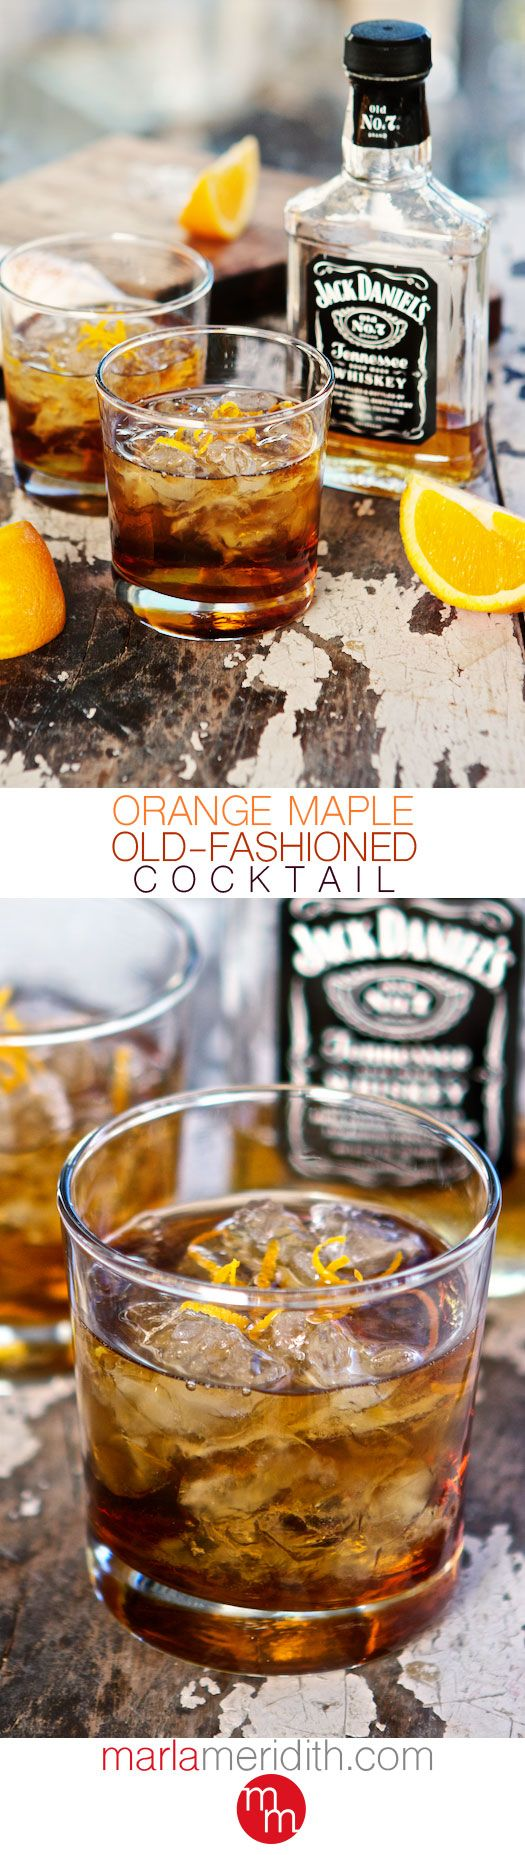 Orange Maple Old-Fashioned Cocktail | A Whiskey Lover's Drink | MarlaMeridith.com